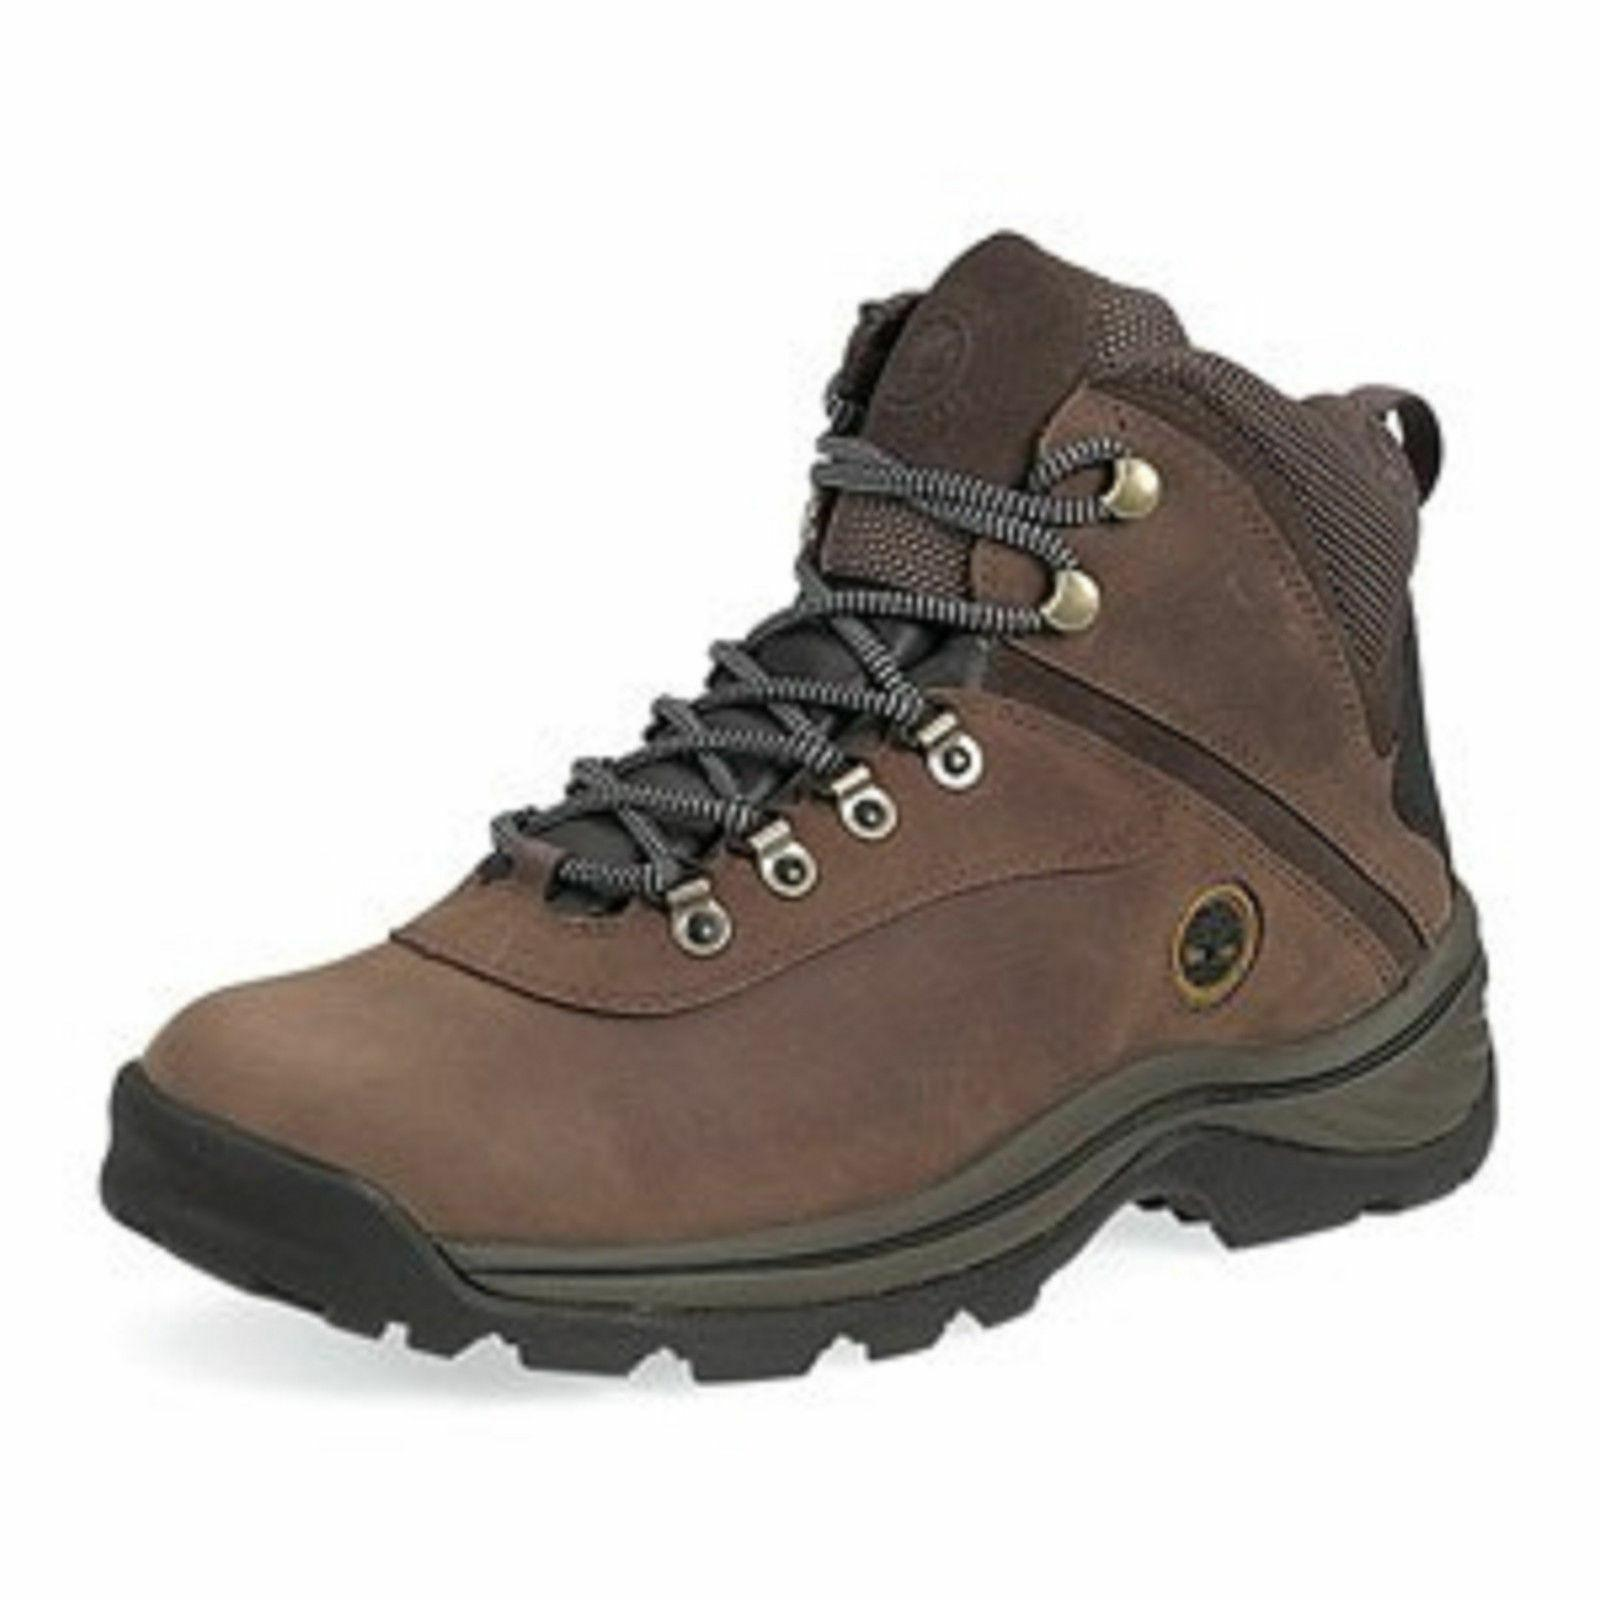 Timberland Mens Waterproof Water Proof Shoes